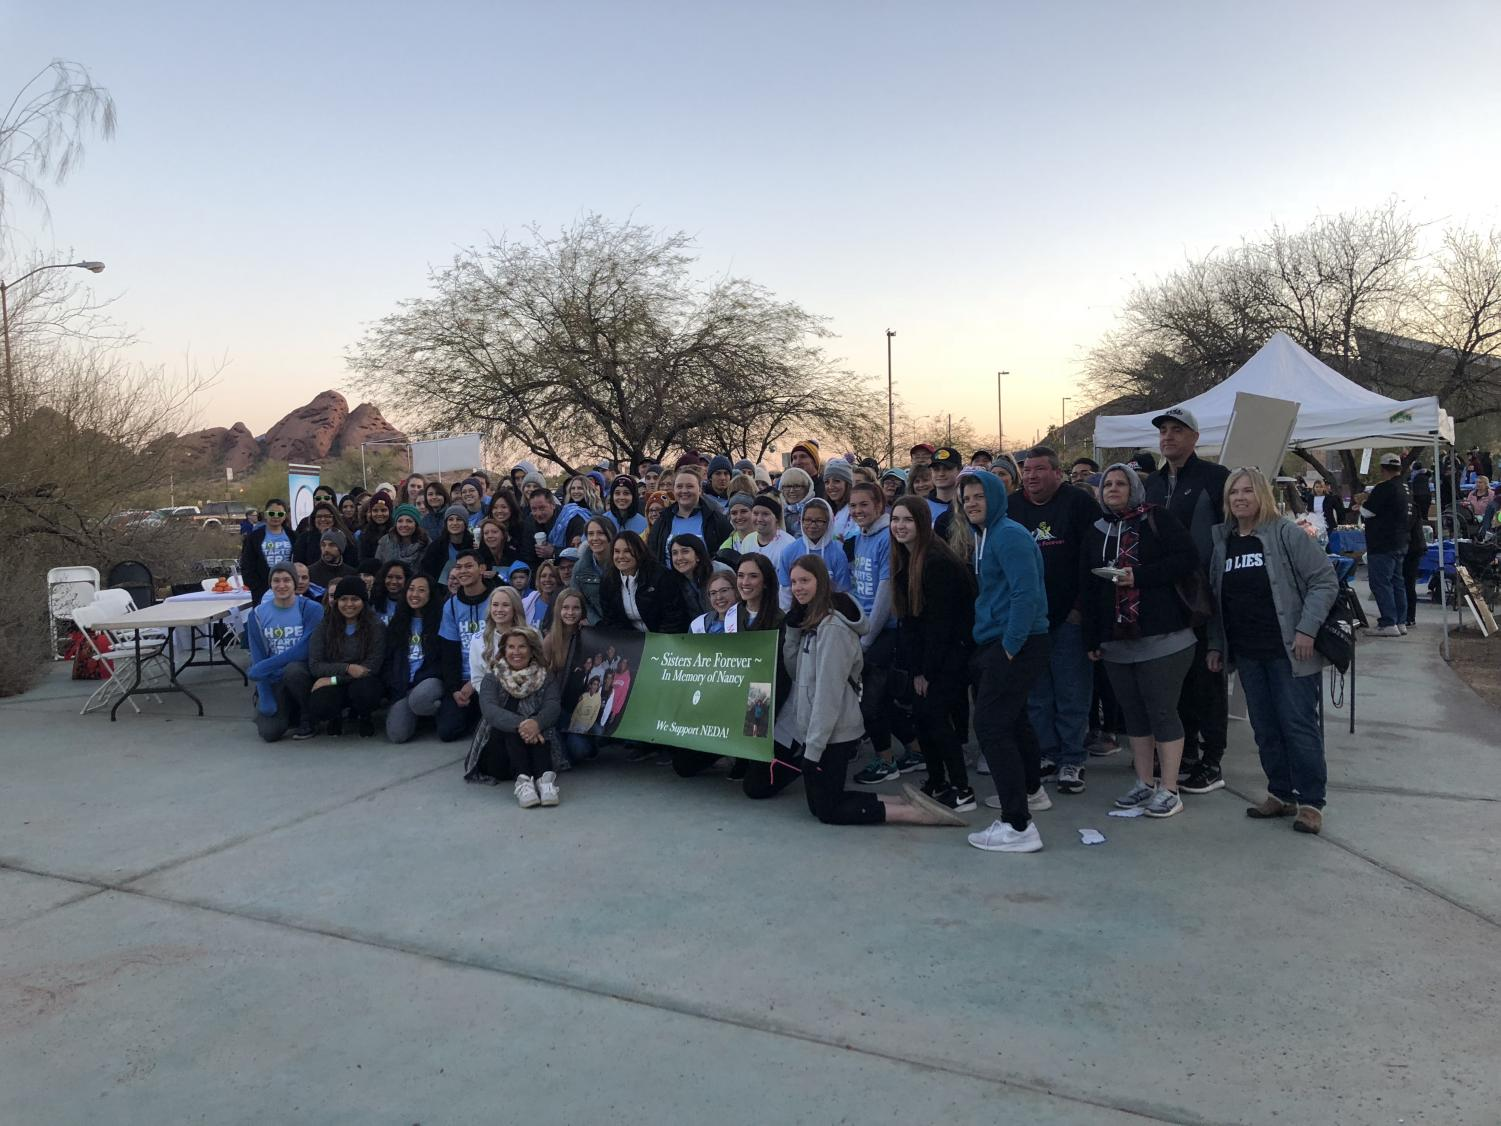 The group of the people who participated in the awareness walk at the Phoenix Zoo